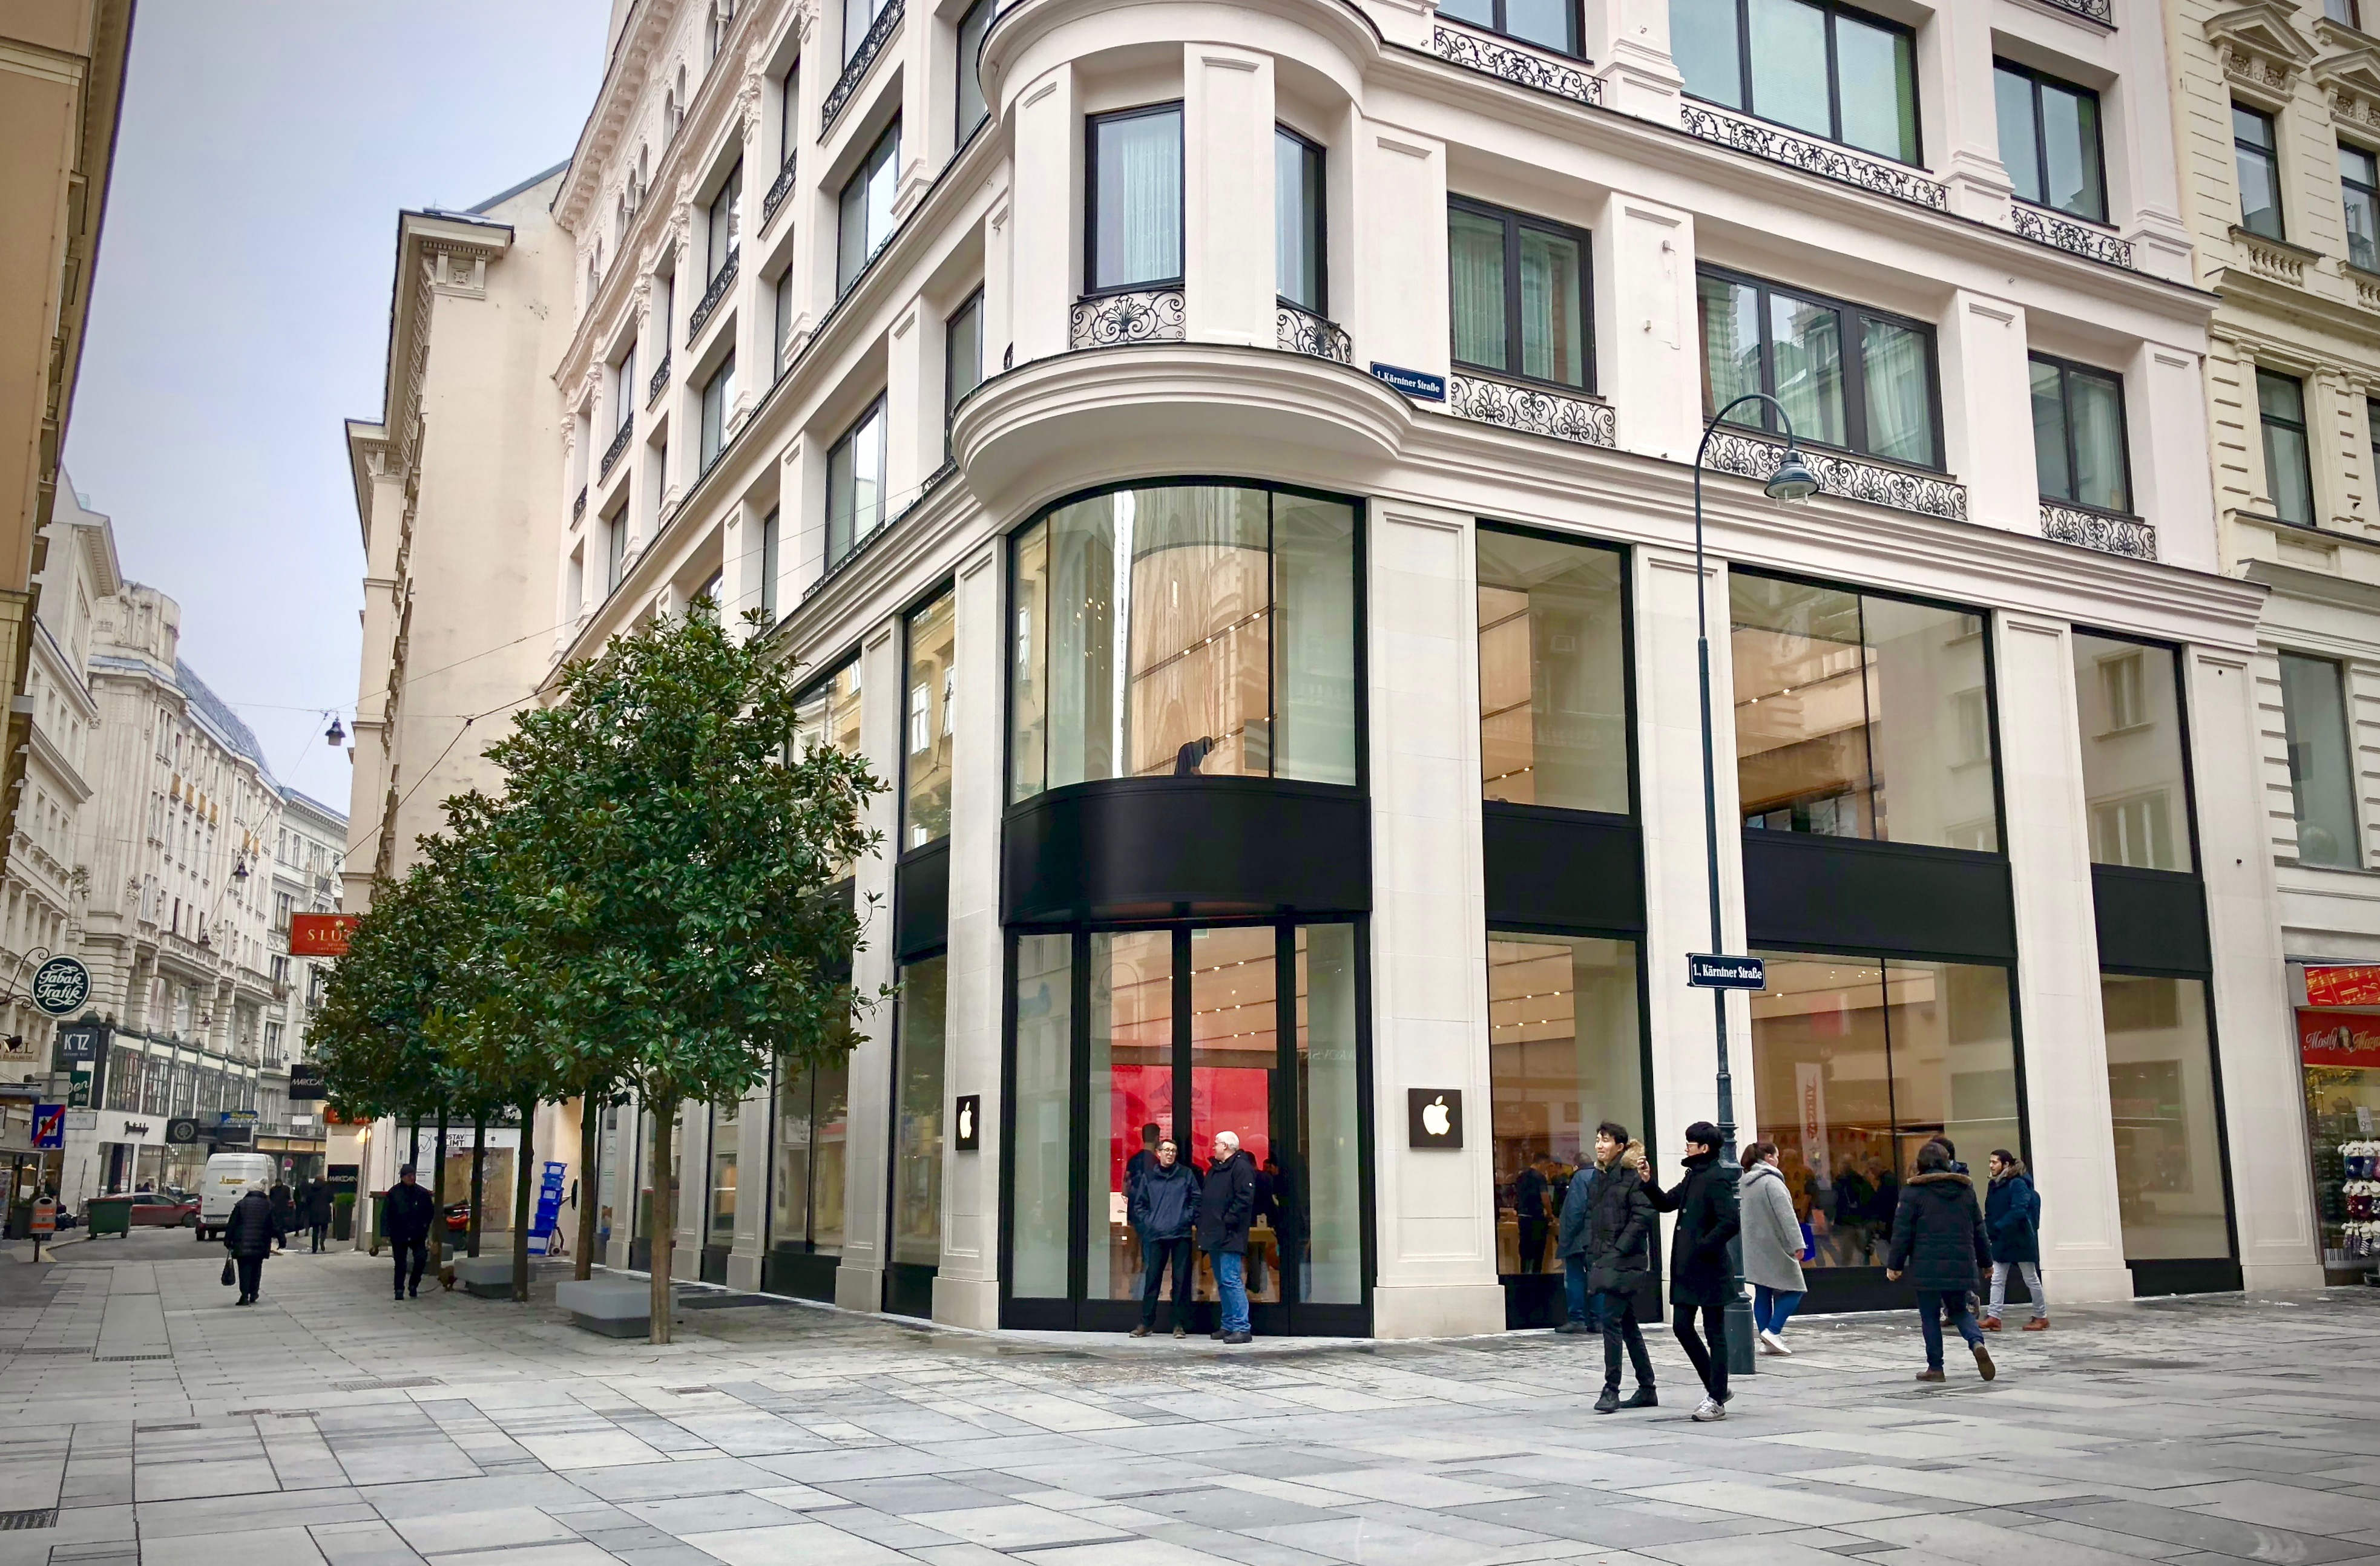 Apple shares fresh photos of new Vienna  Austria retail store ahead     Construction on another historic storefront is underway on Champs     lys    es  in Paris  expected to open later